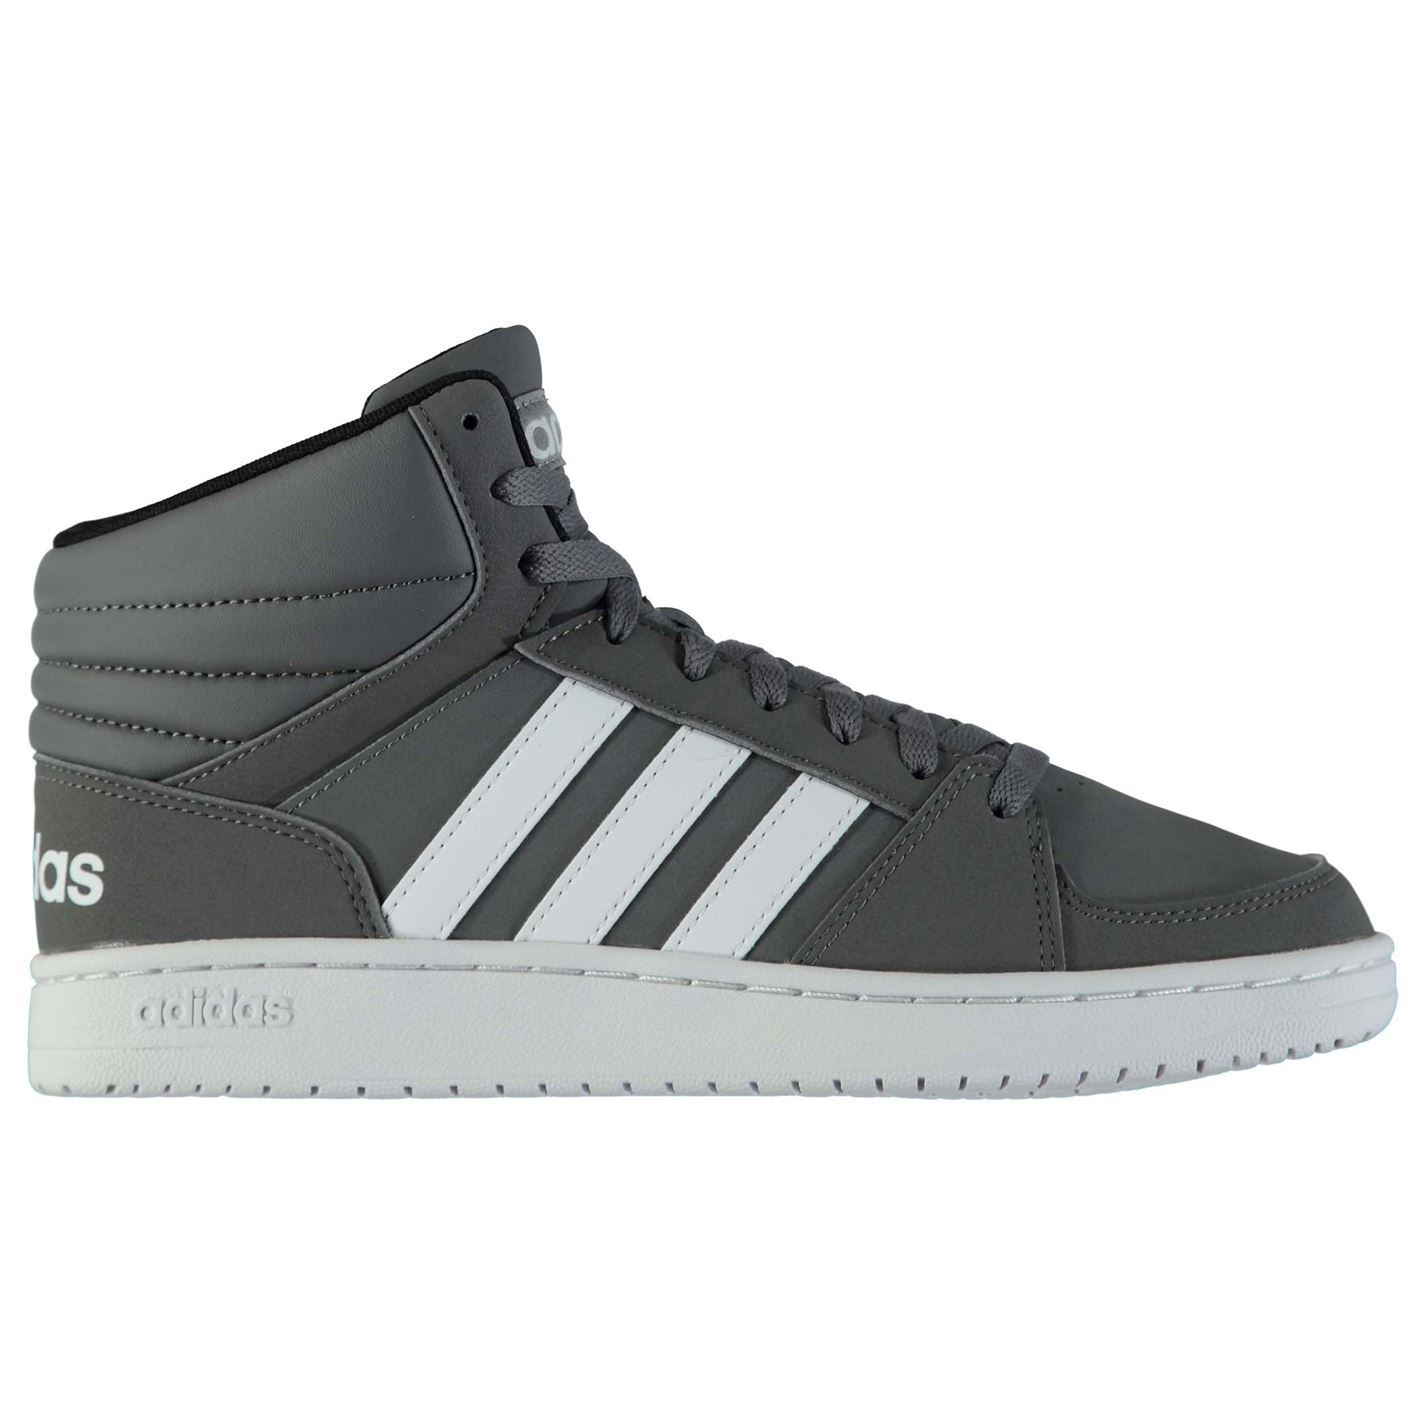 Adidas  Uomo Hoops High Mid Nubuck Hi Top High Hoops Lace Up Retro Tonal Stitching Stripe 7cbbac